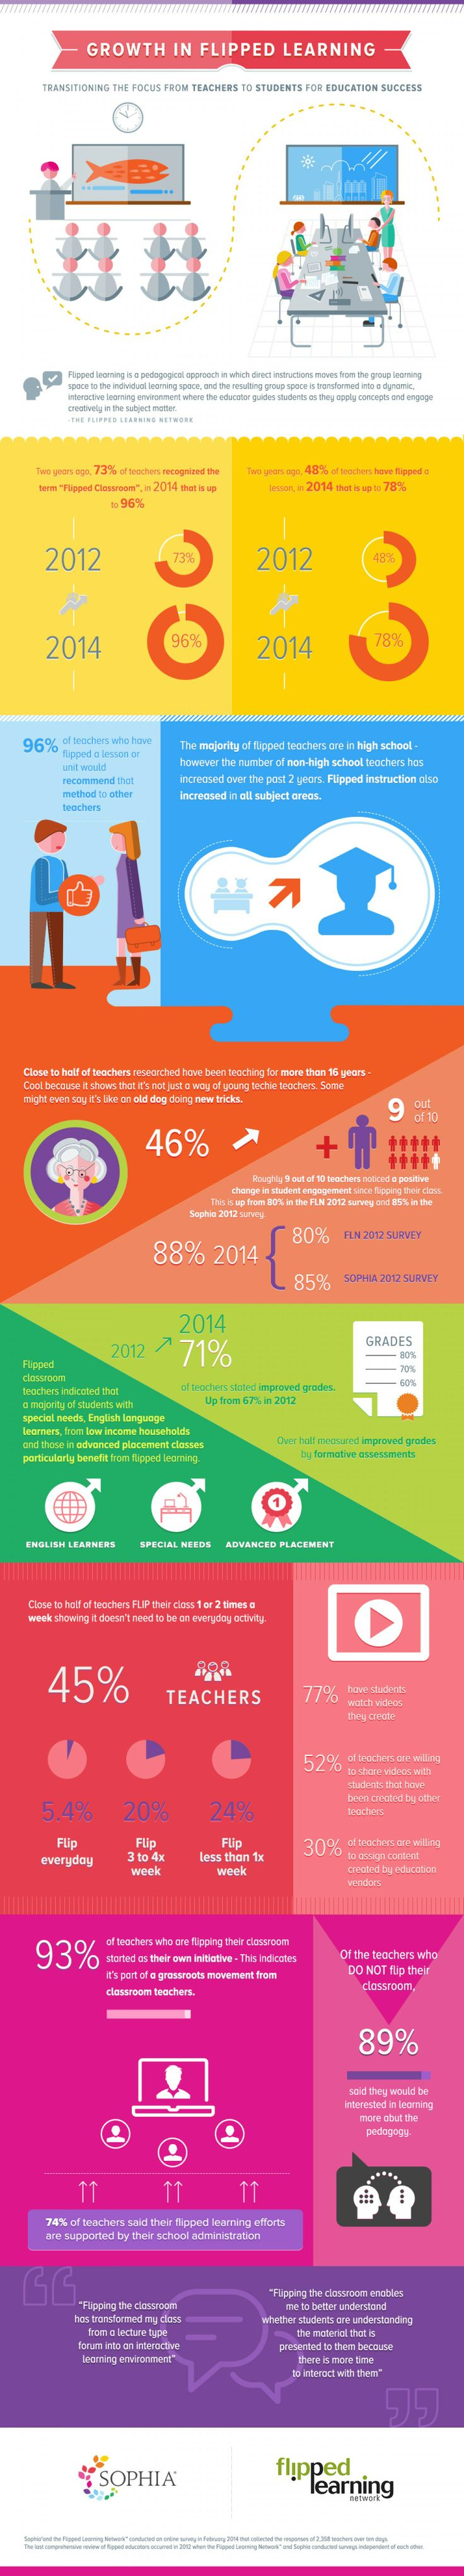 Growth in Flipped Learning